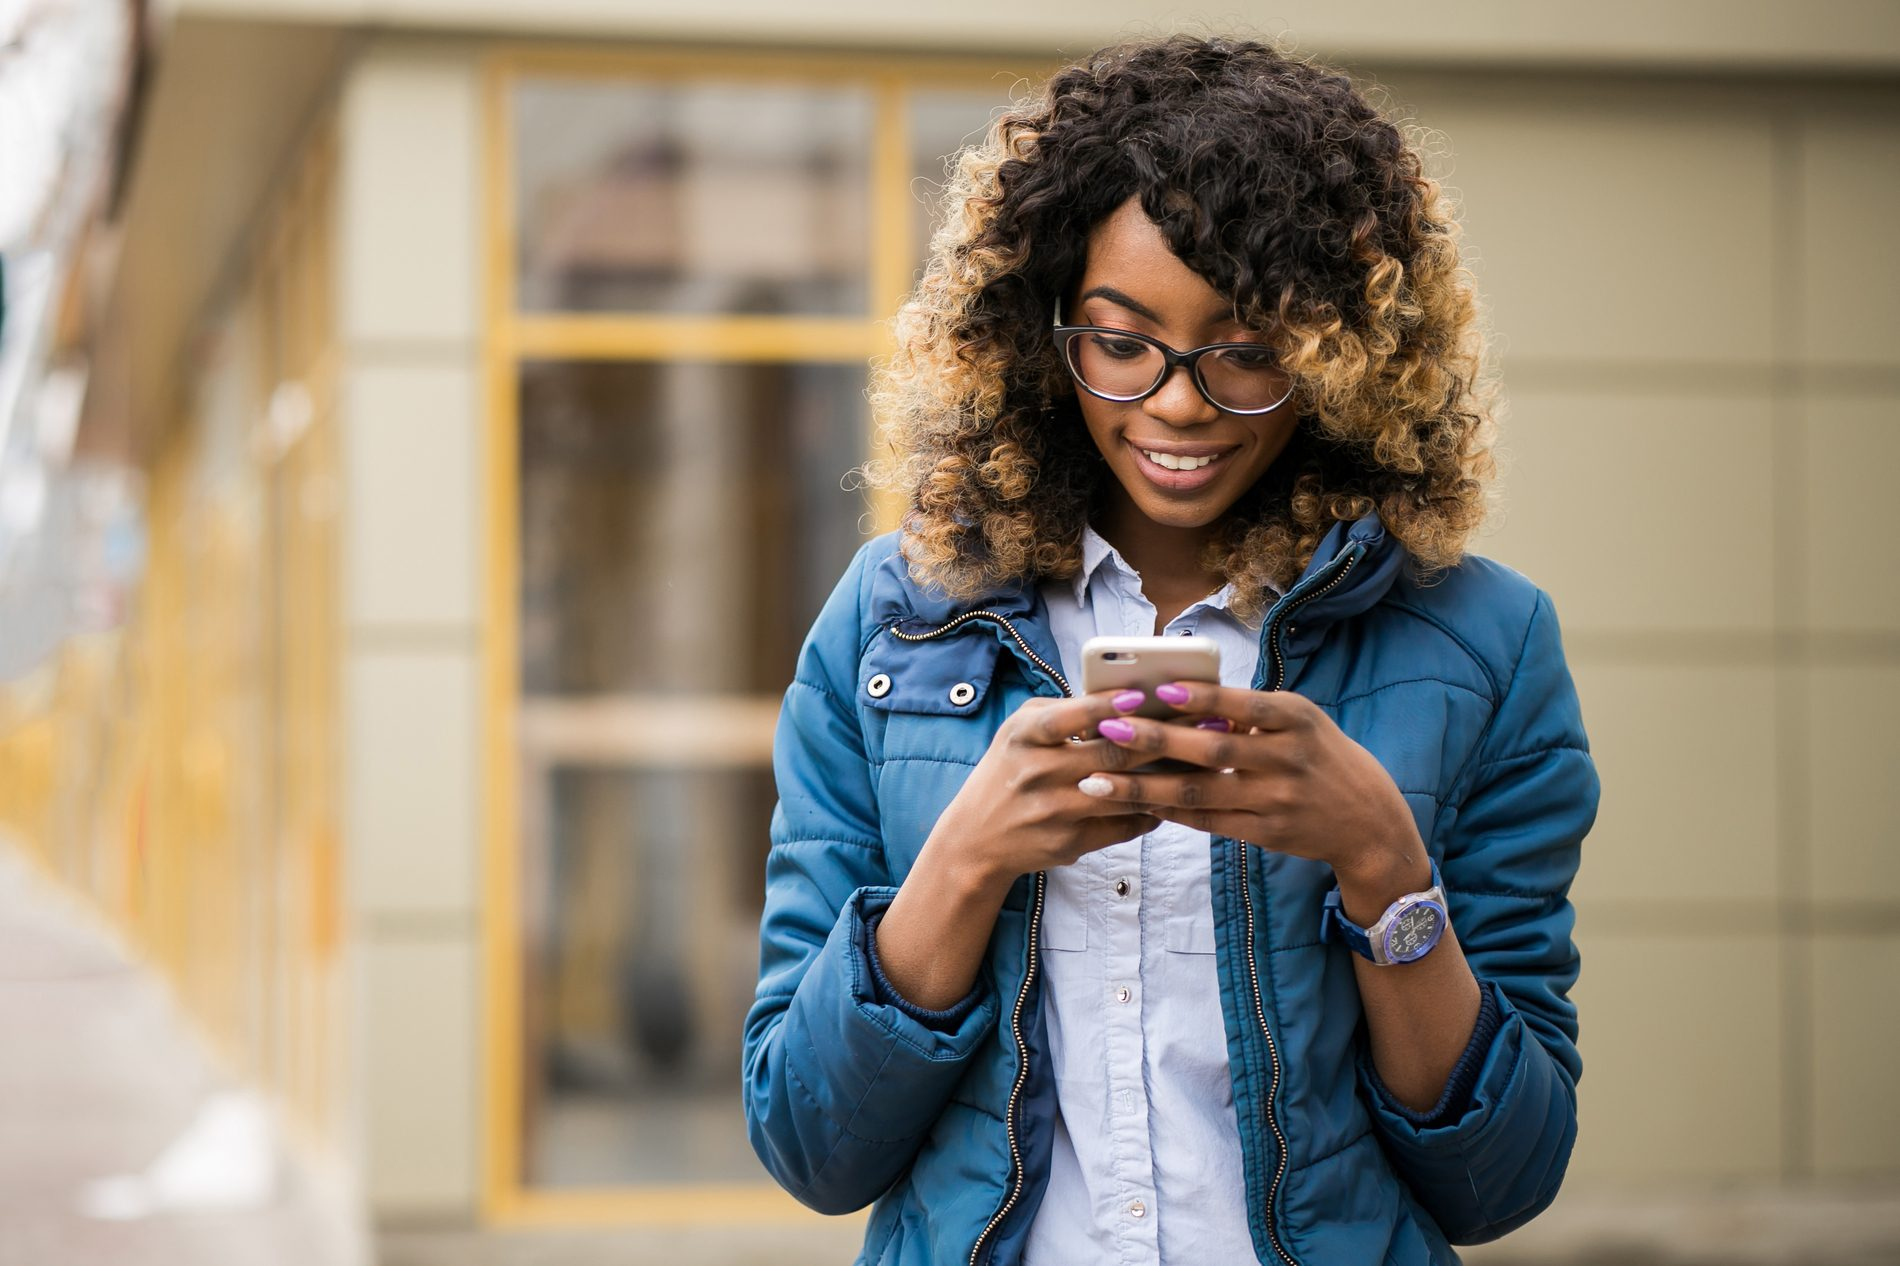 A young person smiles while using their phone